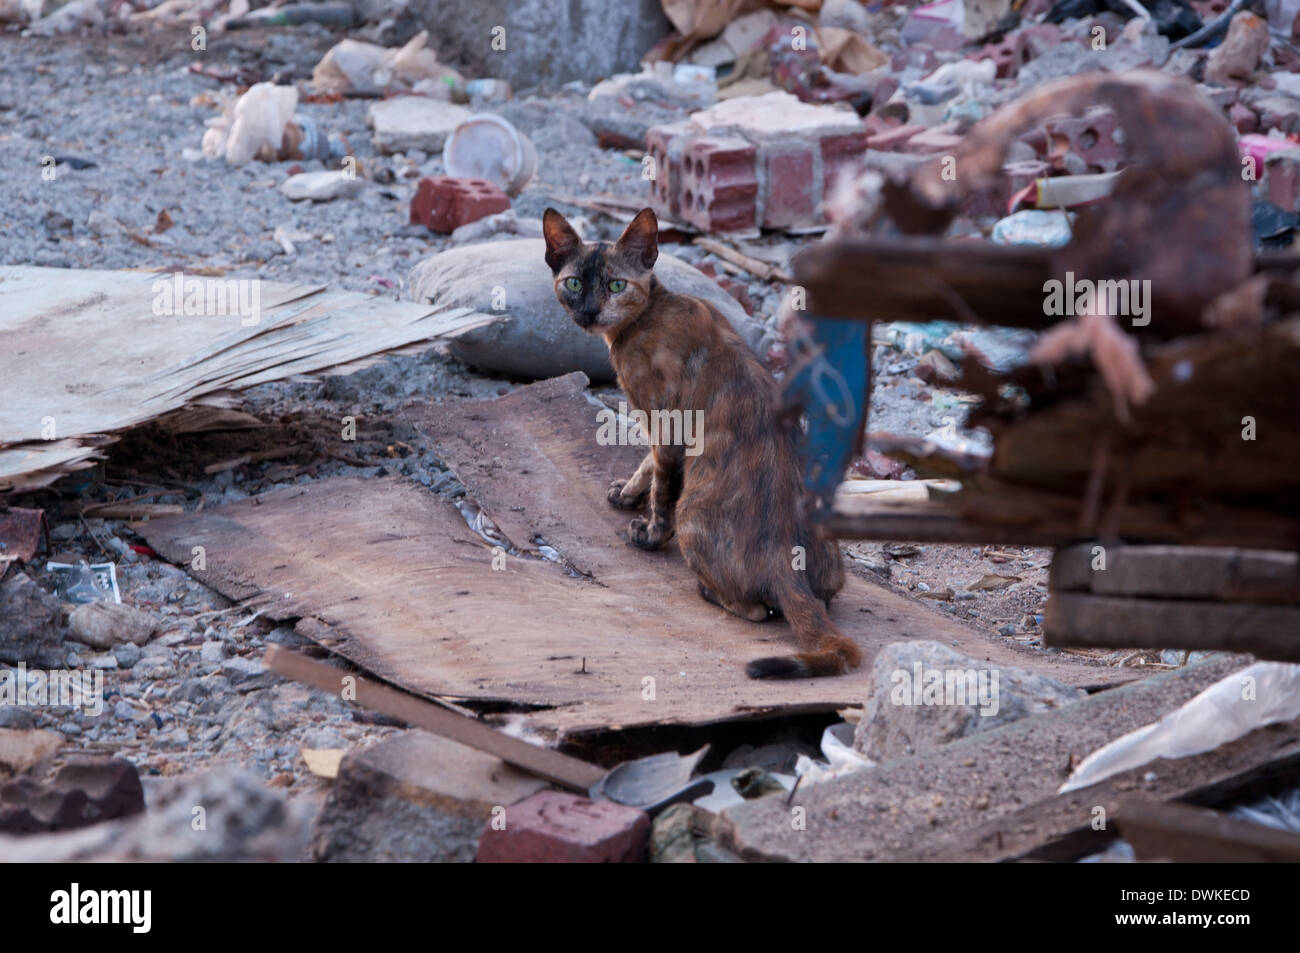 Cat in the rubble and mess in Egypt, hurghada - Stock Image